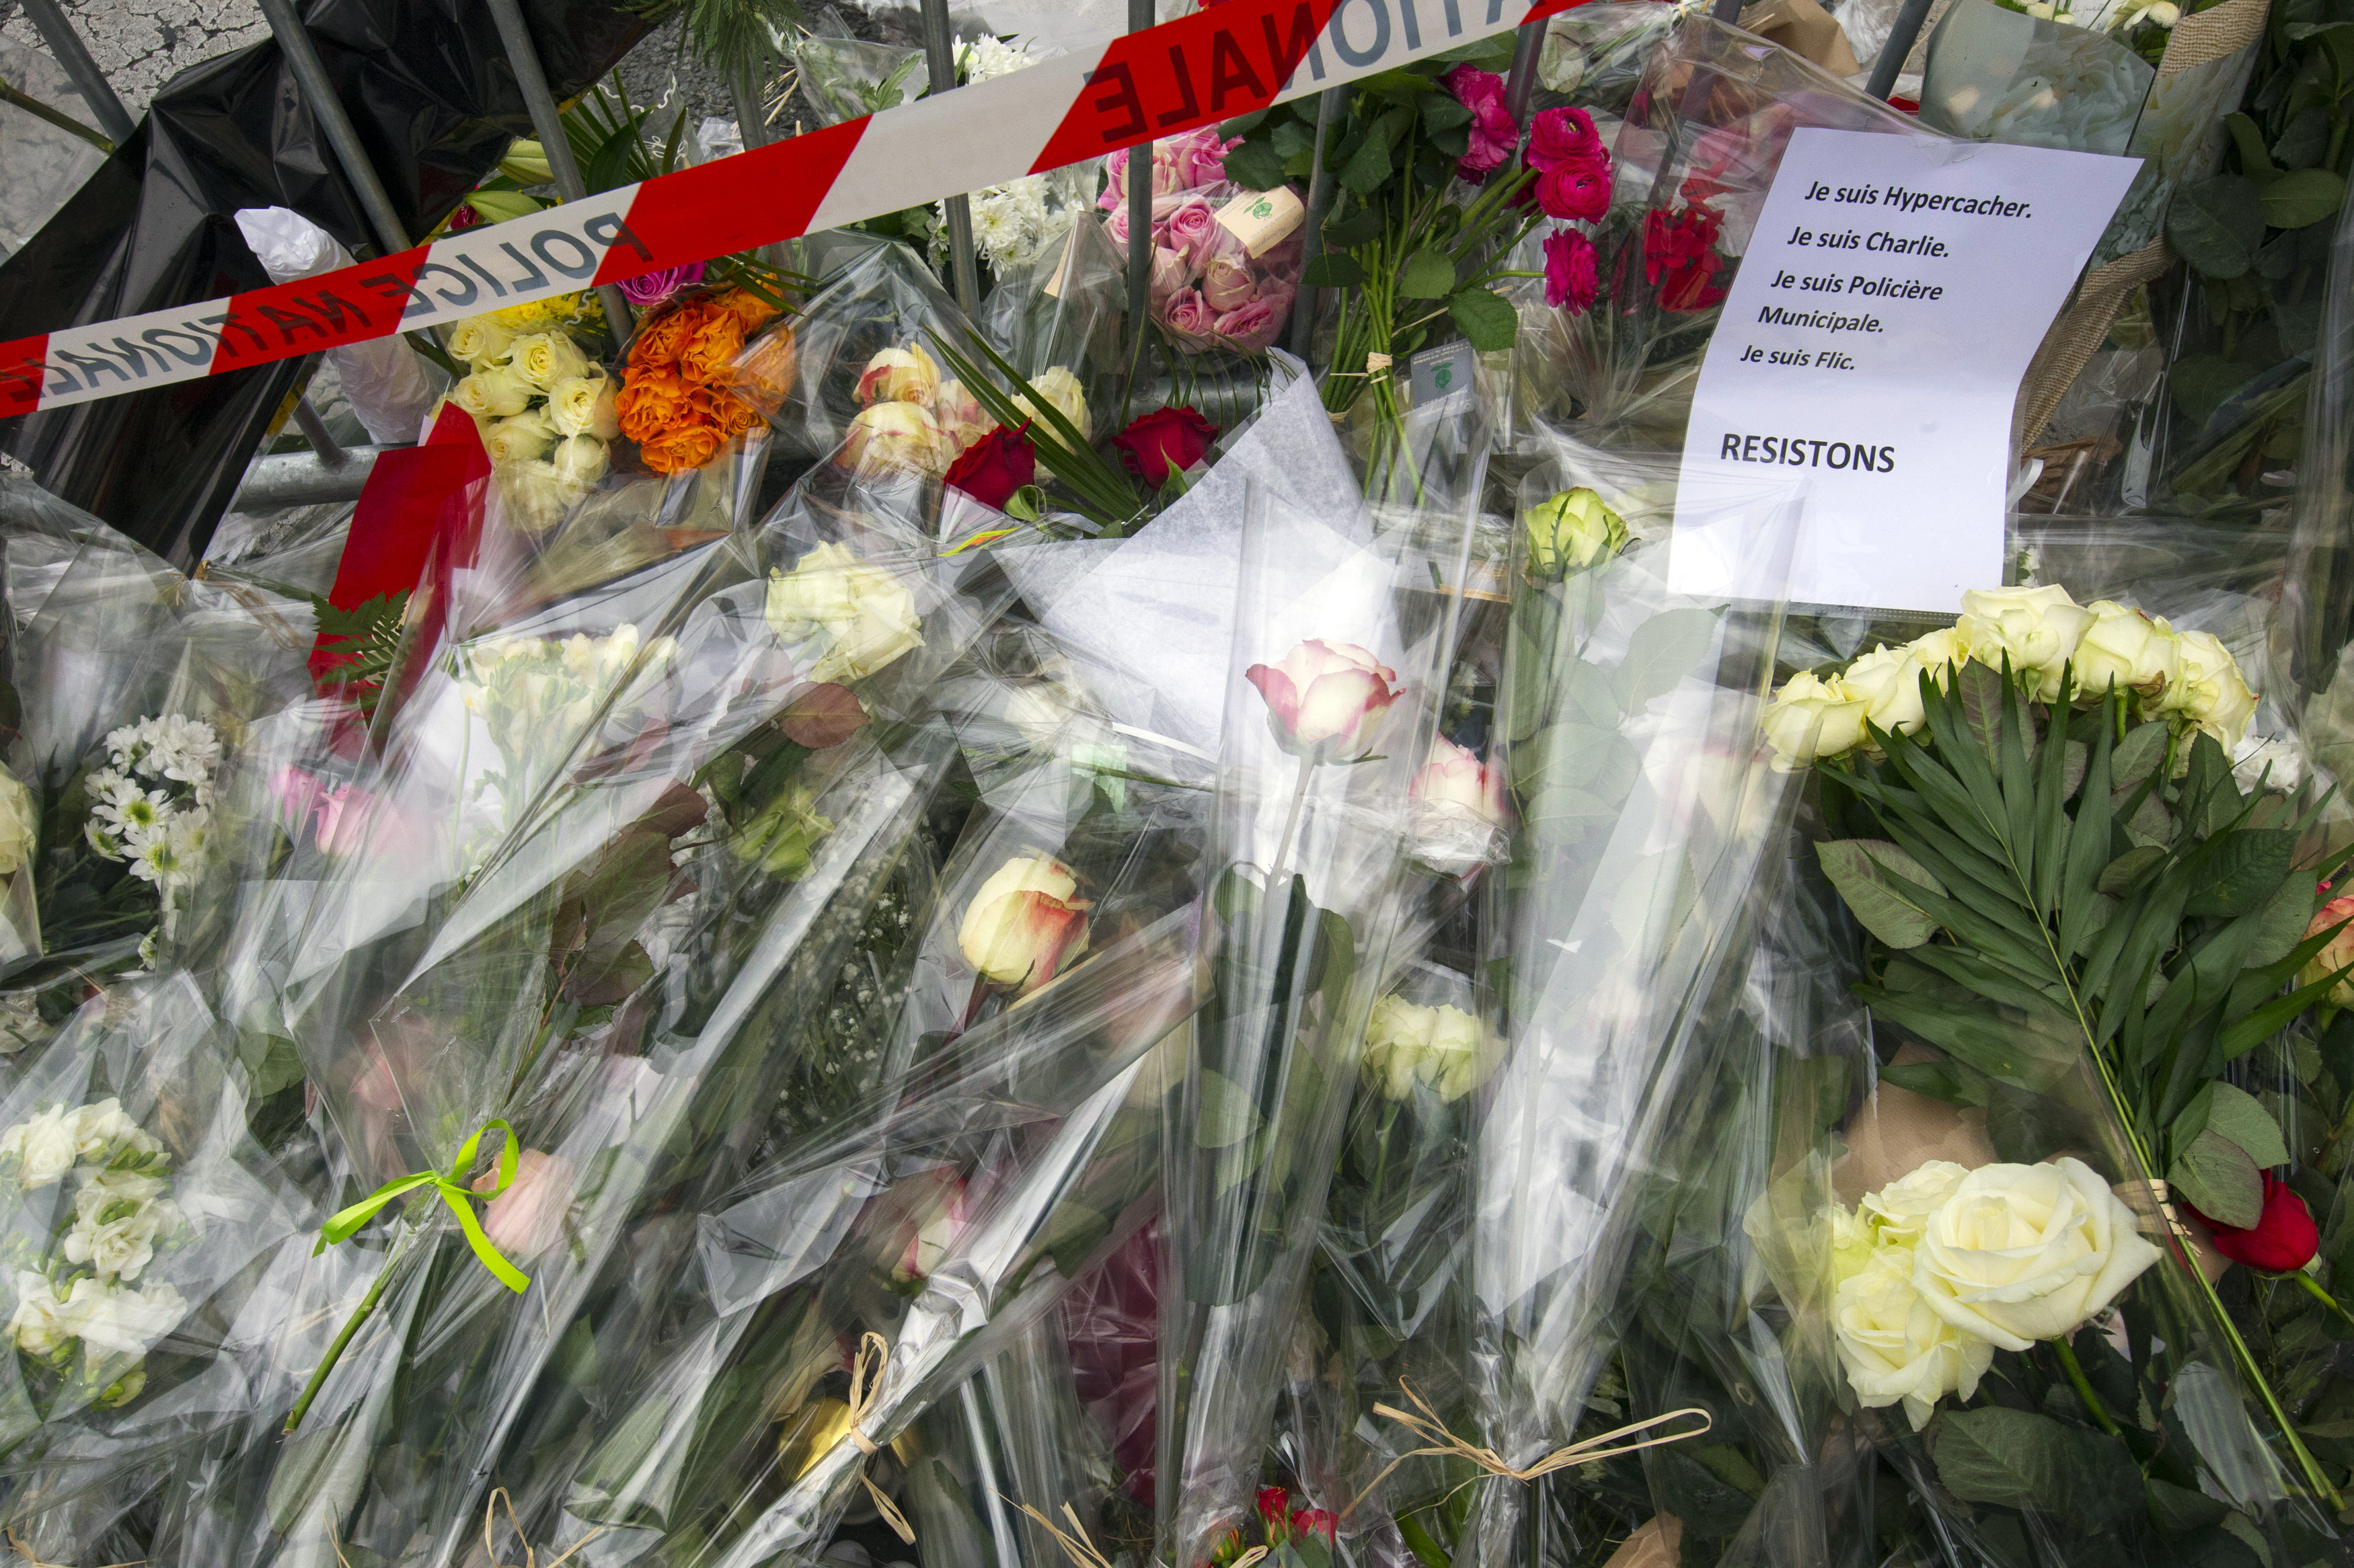 A sign reading  I am Hypercacher, I am Charlie and I am police officer, we must resist  is placed among flowers outside the Hyper Cacher kosher supermarket near Porte de Vincennes in eastern Paris, on Jan. 10, 2015.